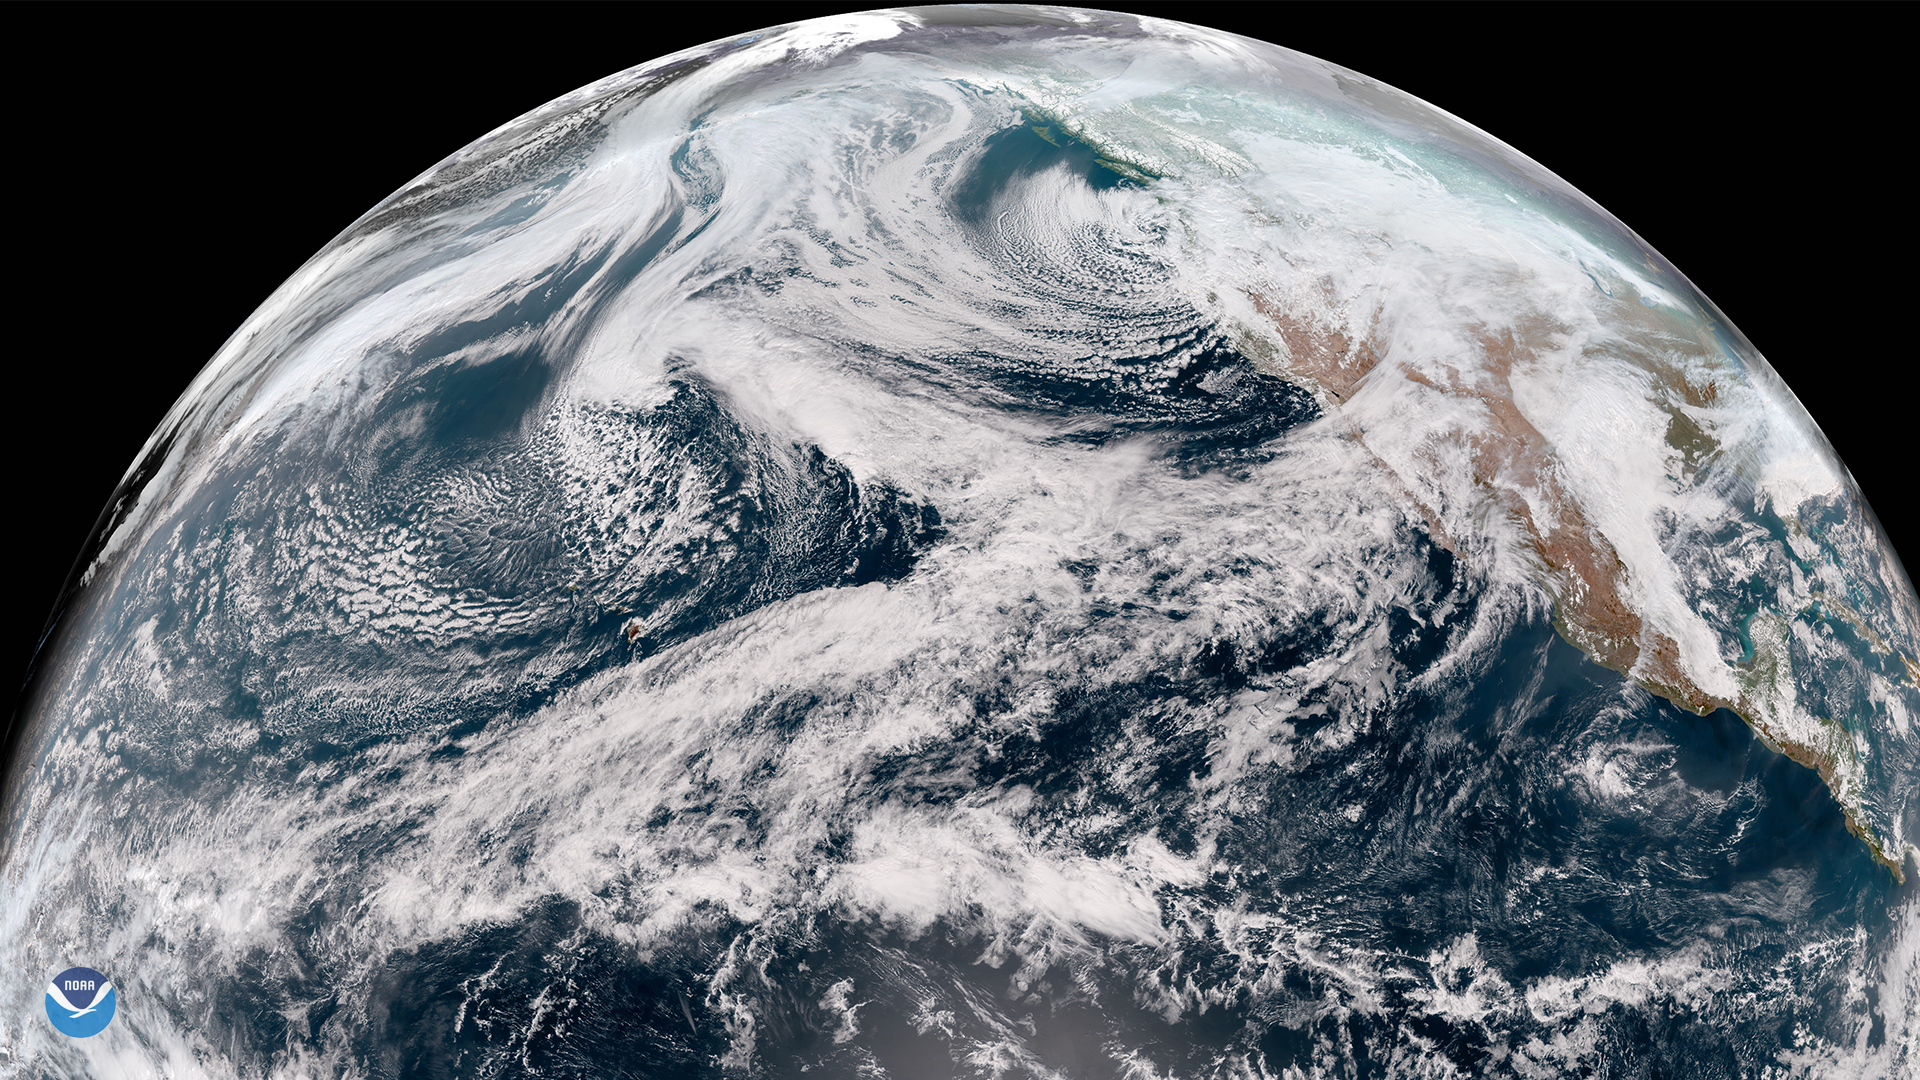 GOES-17 Is Now Operational - Here's What It Means for Forecasting